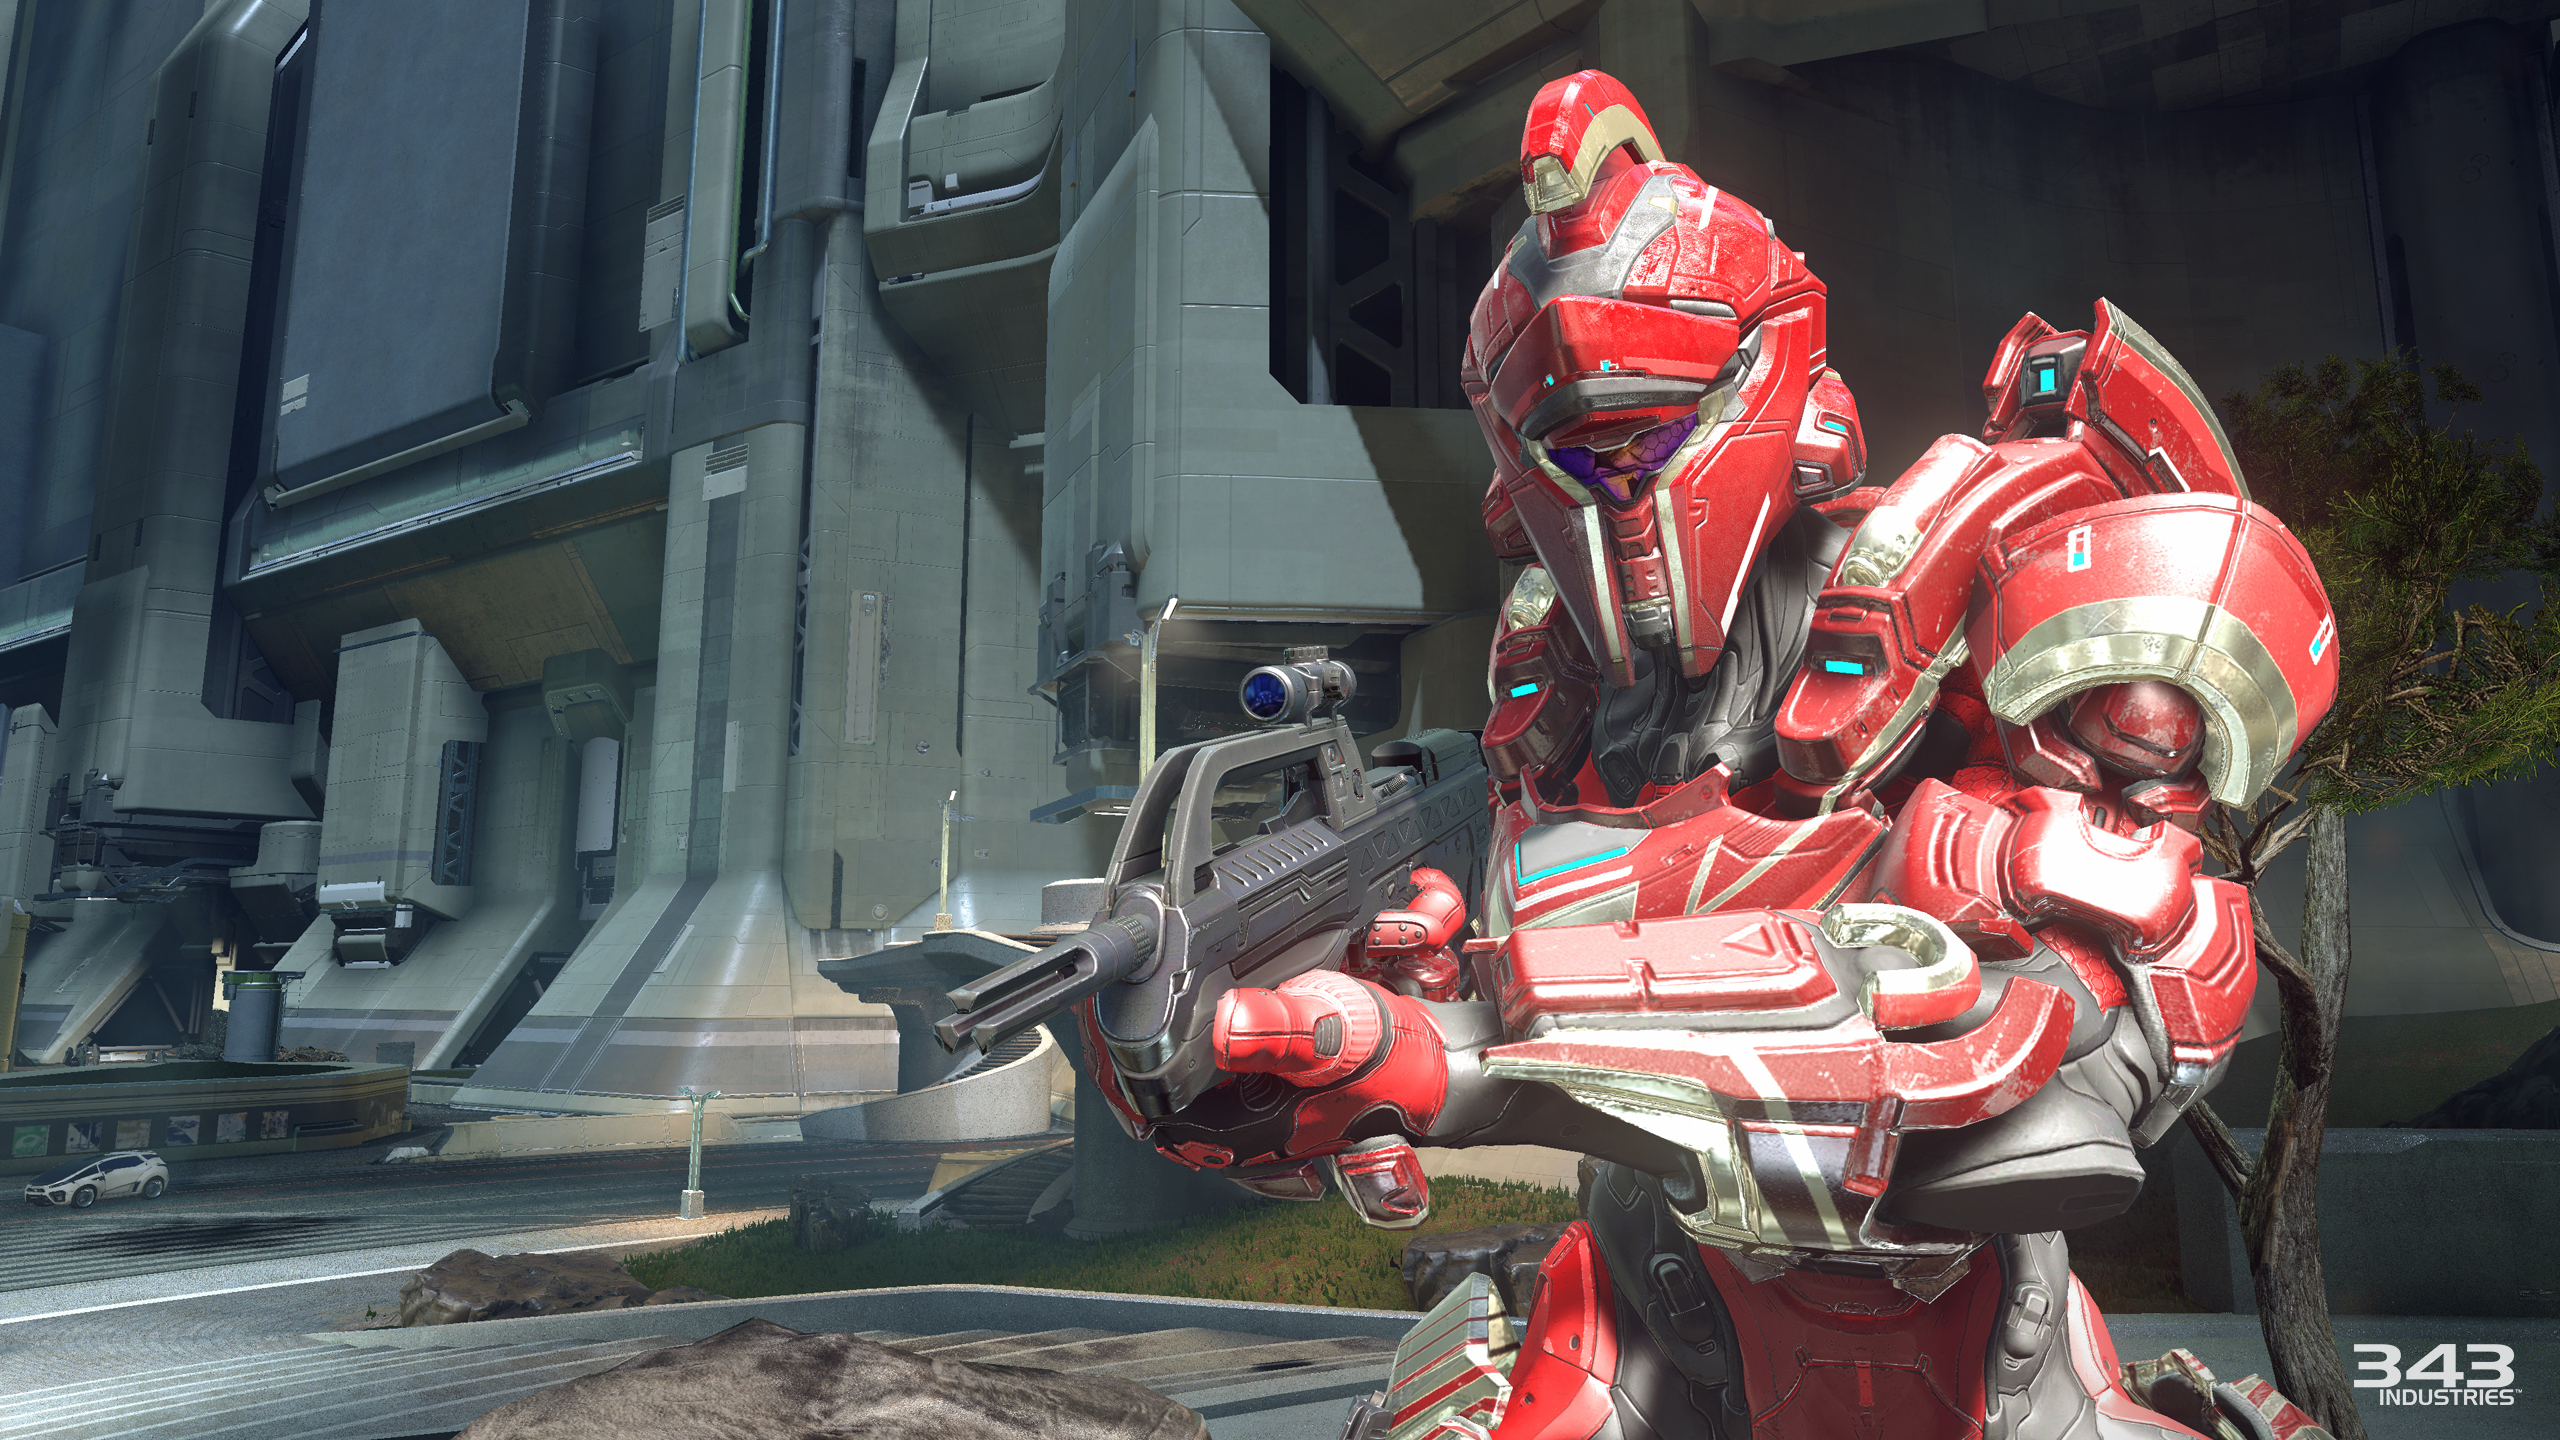 New Halo 5: Guardians Infinity's Armory Gallery Shows off